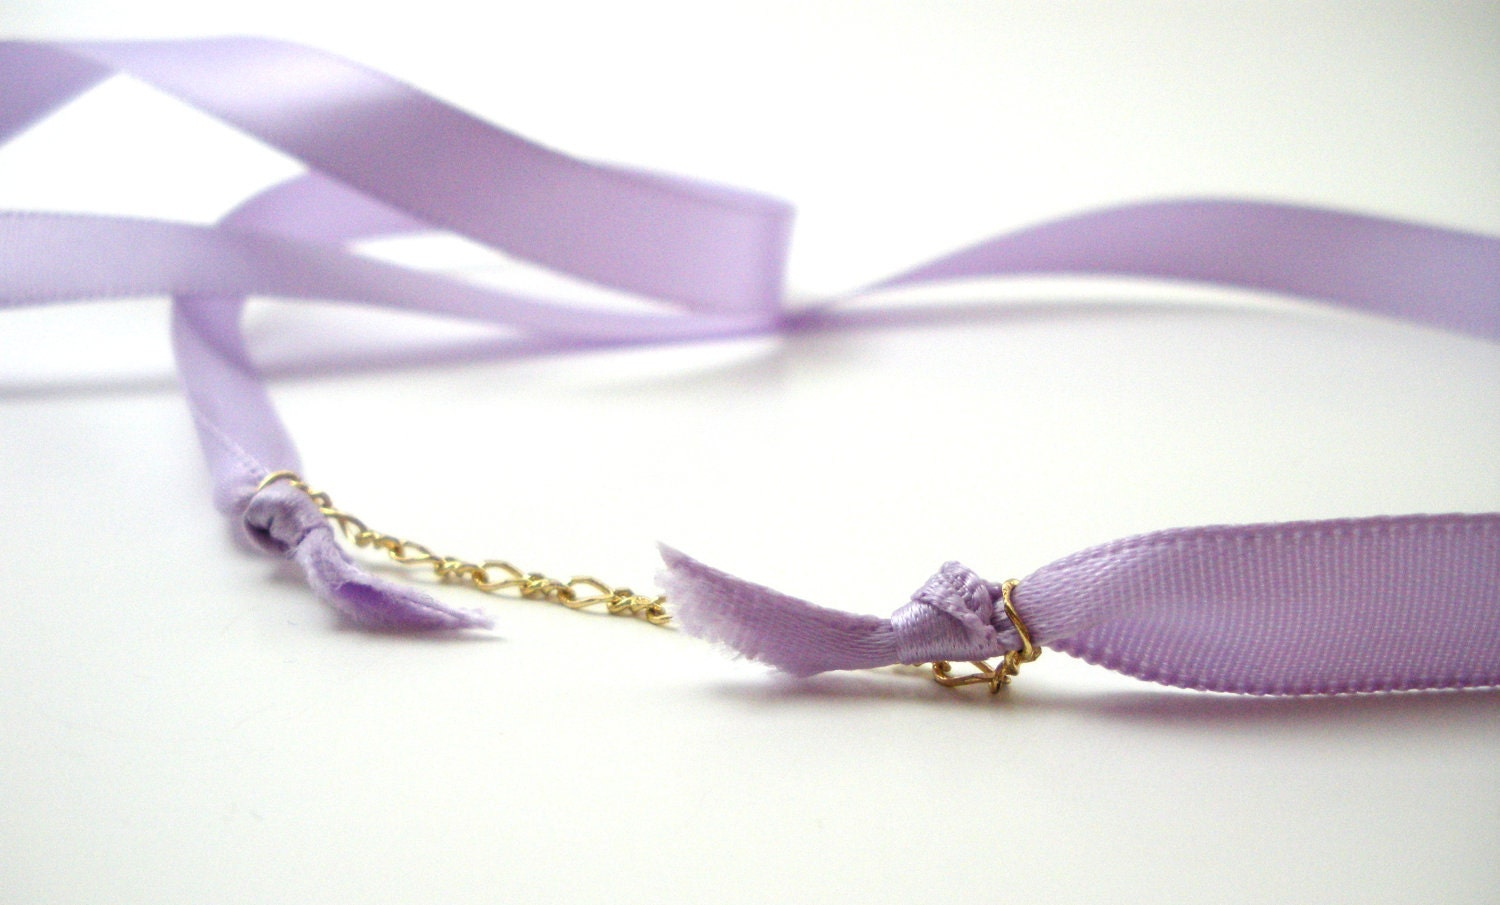 Lavender Satin Ribbon and Gold Chain Necklace